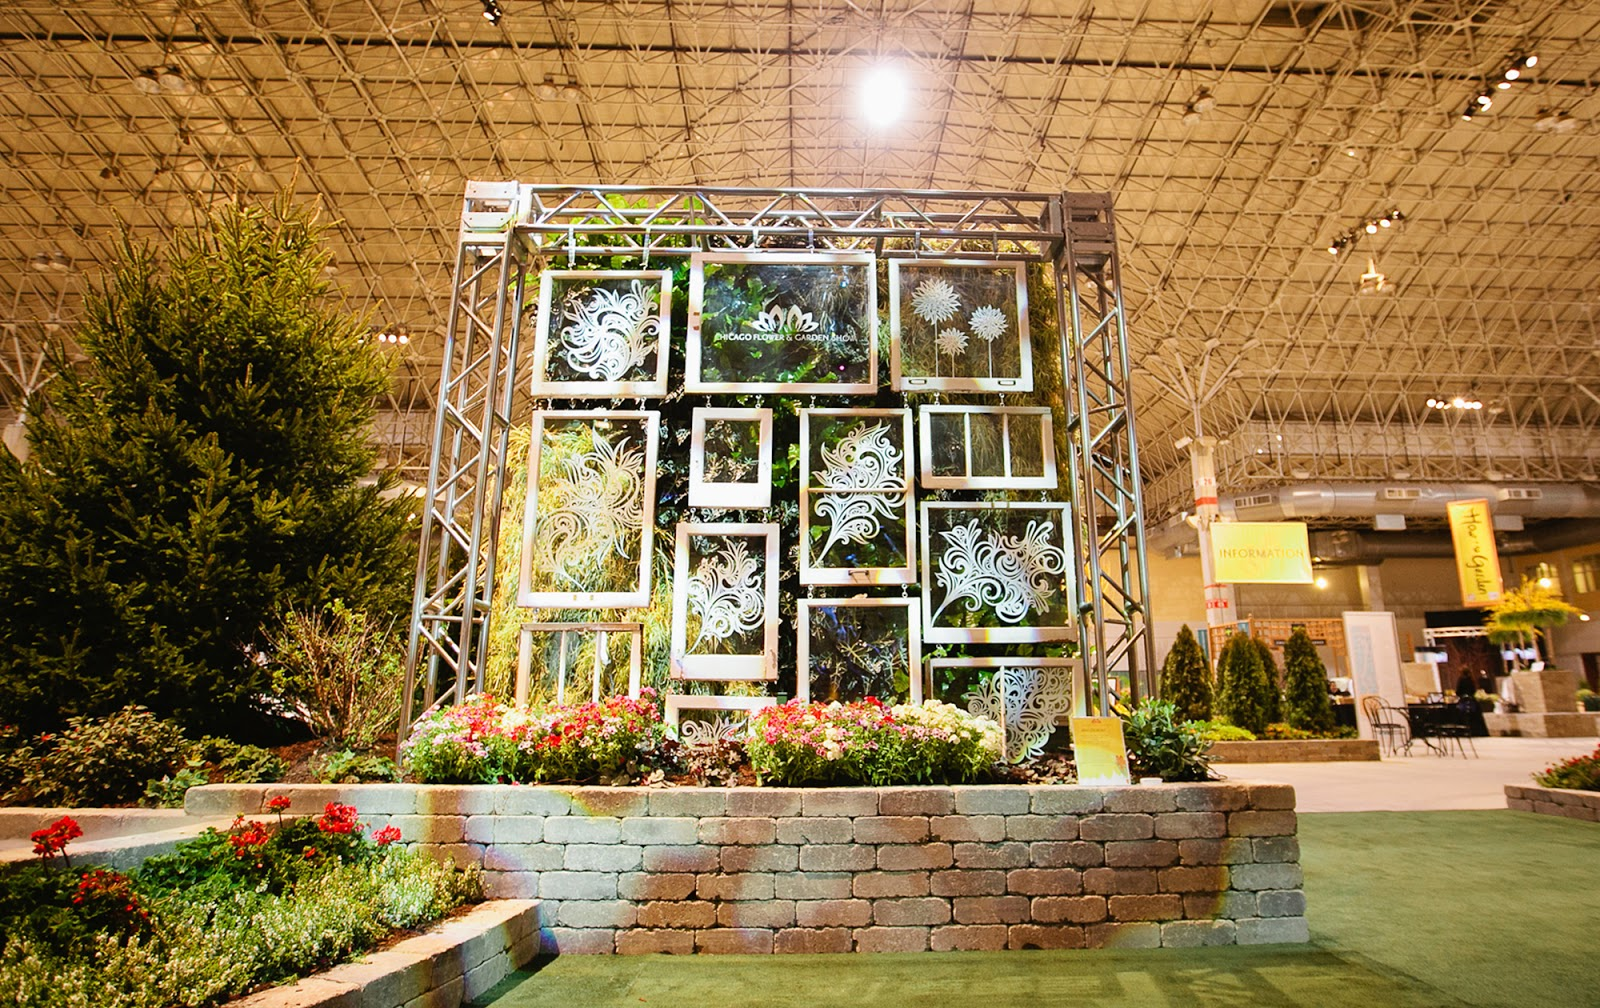 Emmy Star Brown Chicago Flower Garden Show Navy Pier